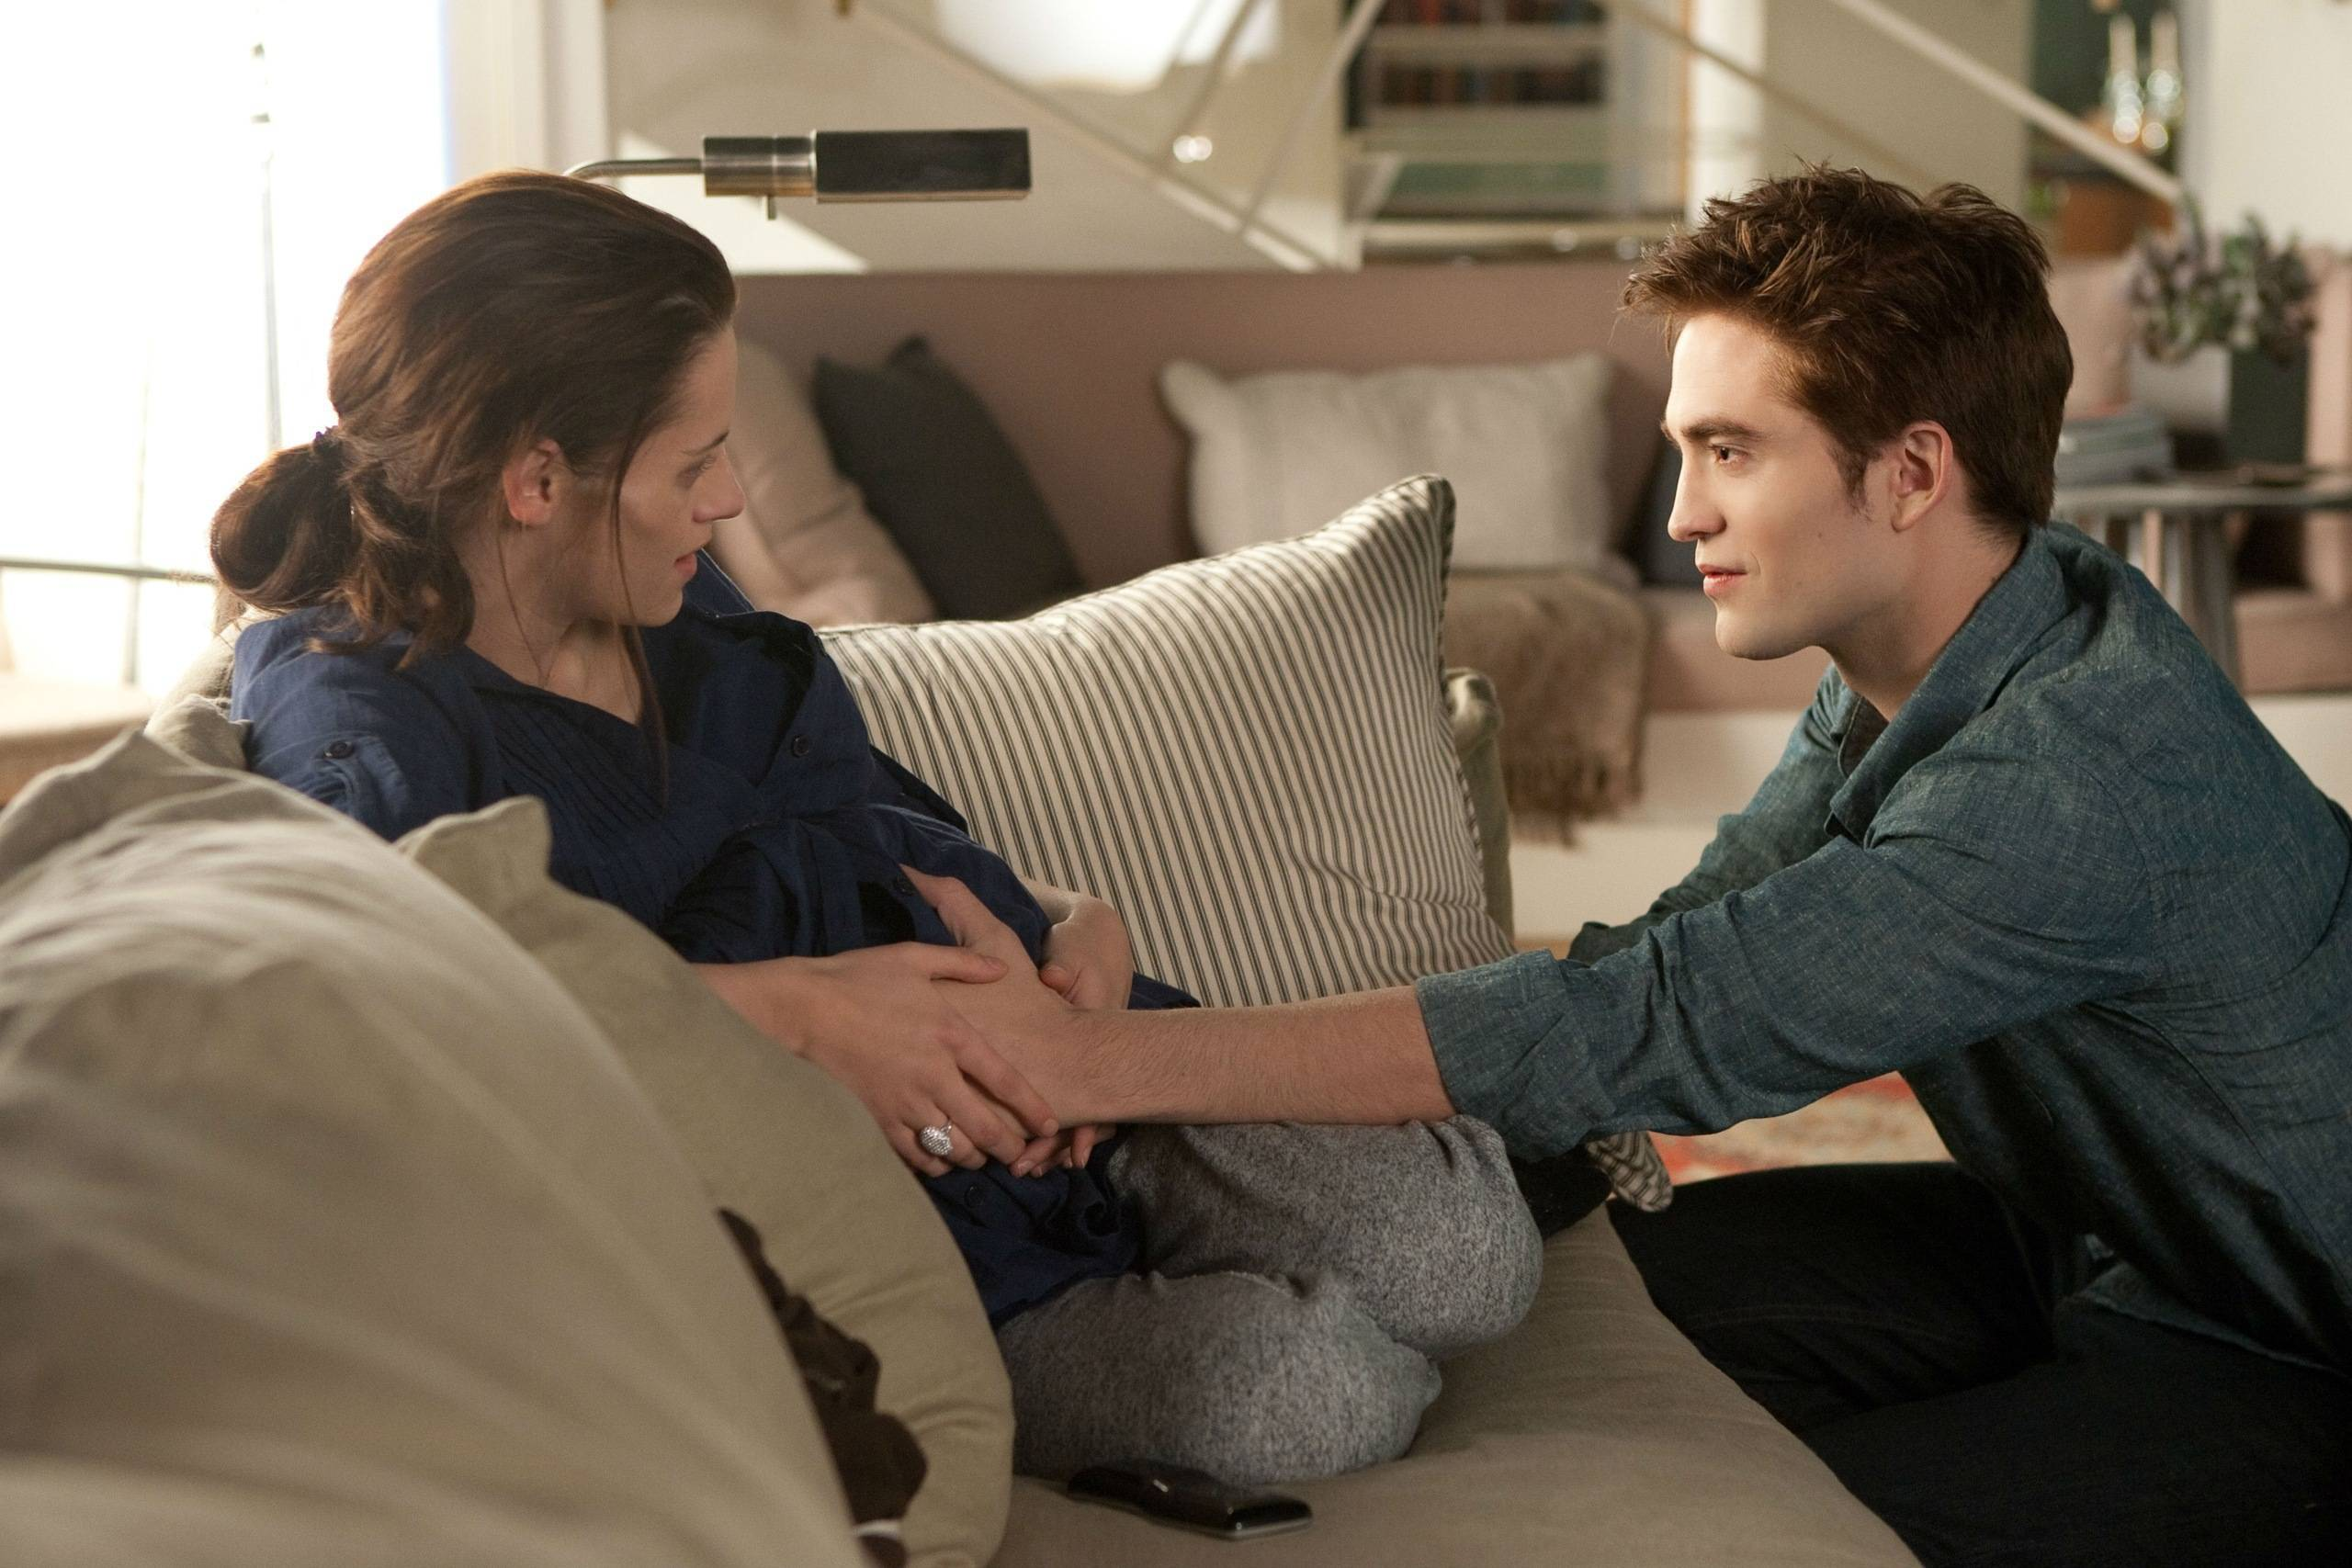 New Stills: Wedding, Honeymoon & (Animatronic?) Renesmee ...